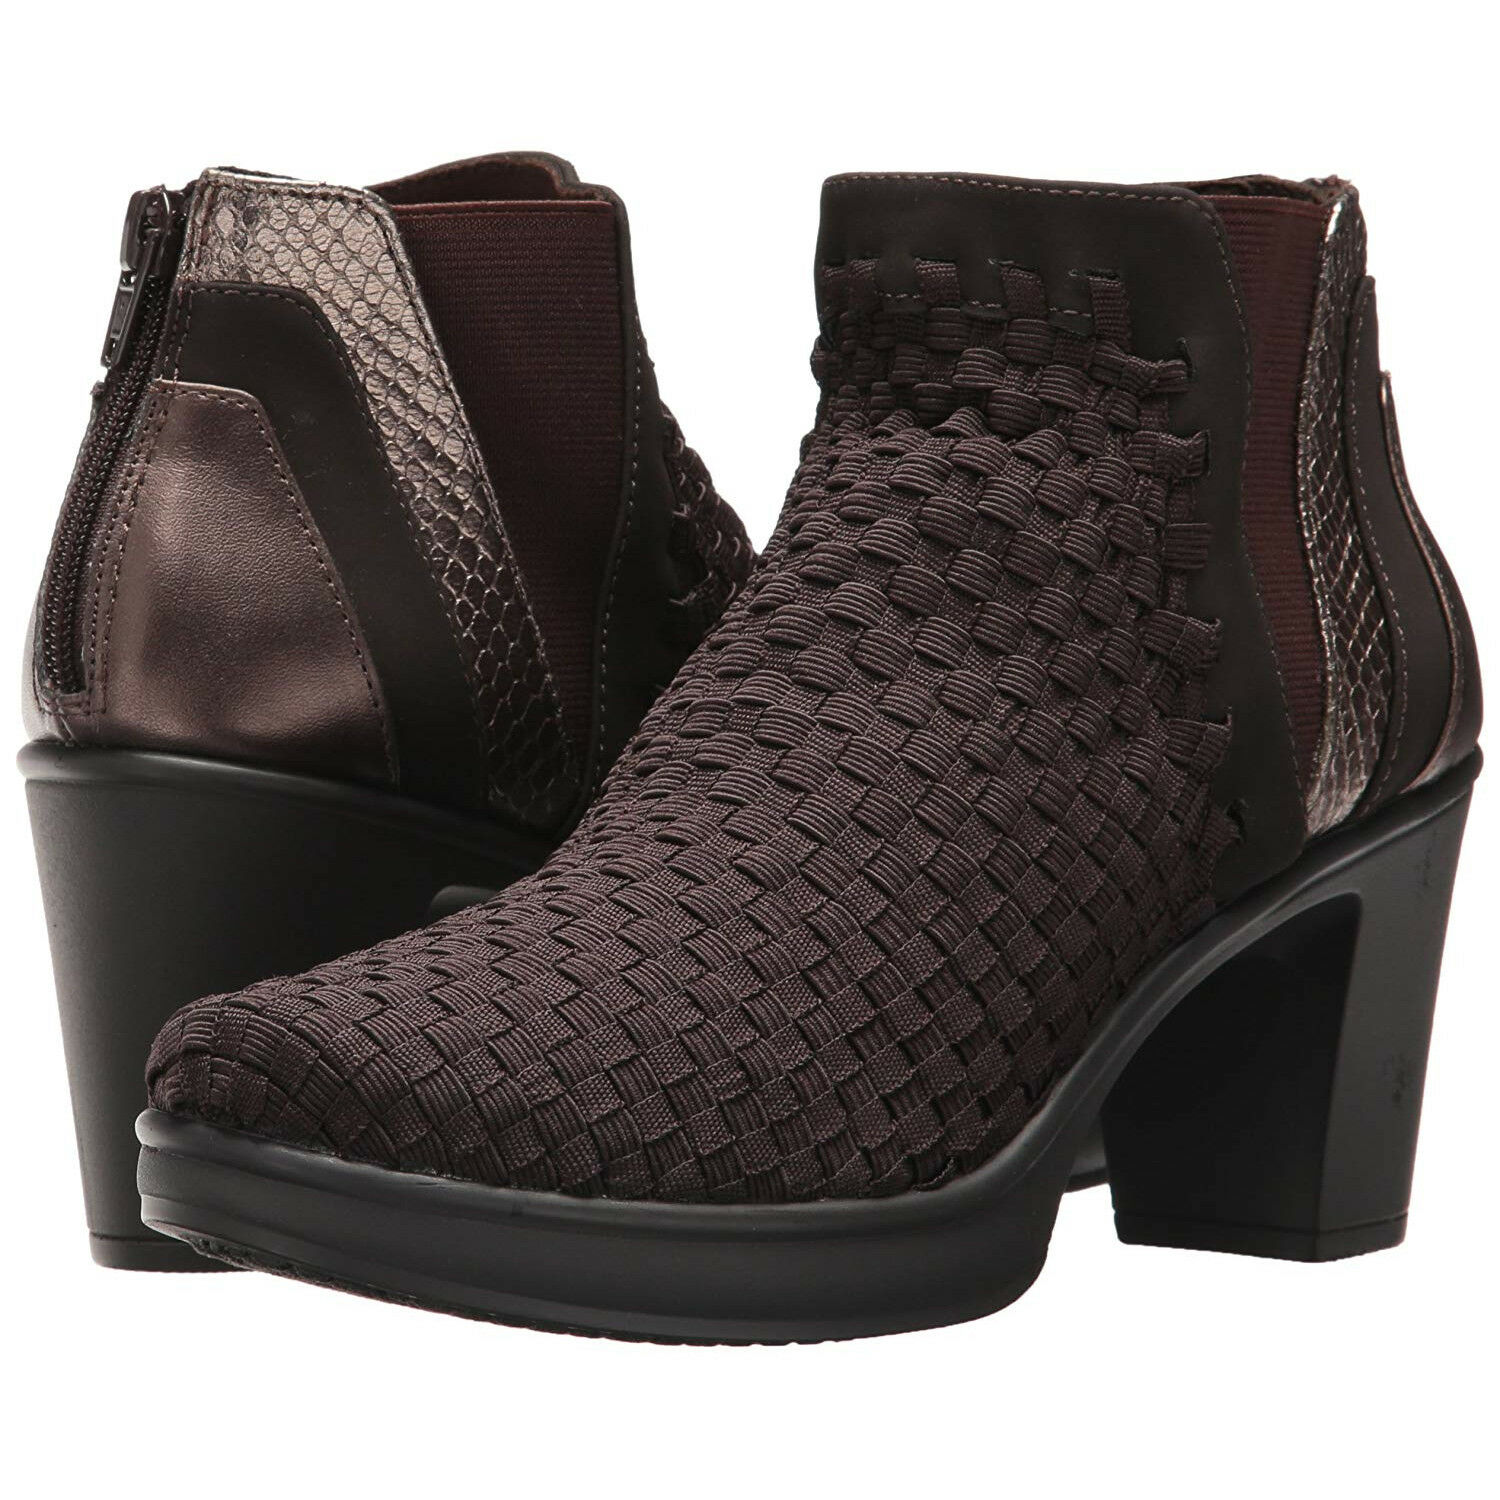 STEVEN by Steve Madden Women's Excit Ankle Booties Booties Booties (Brown, 7.5) ae5571